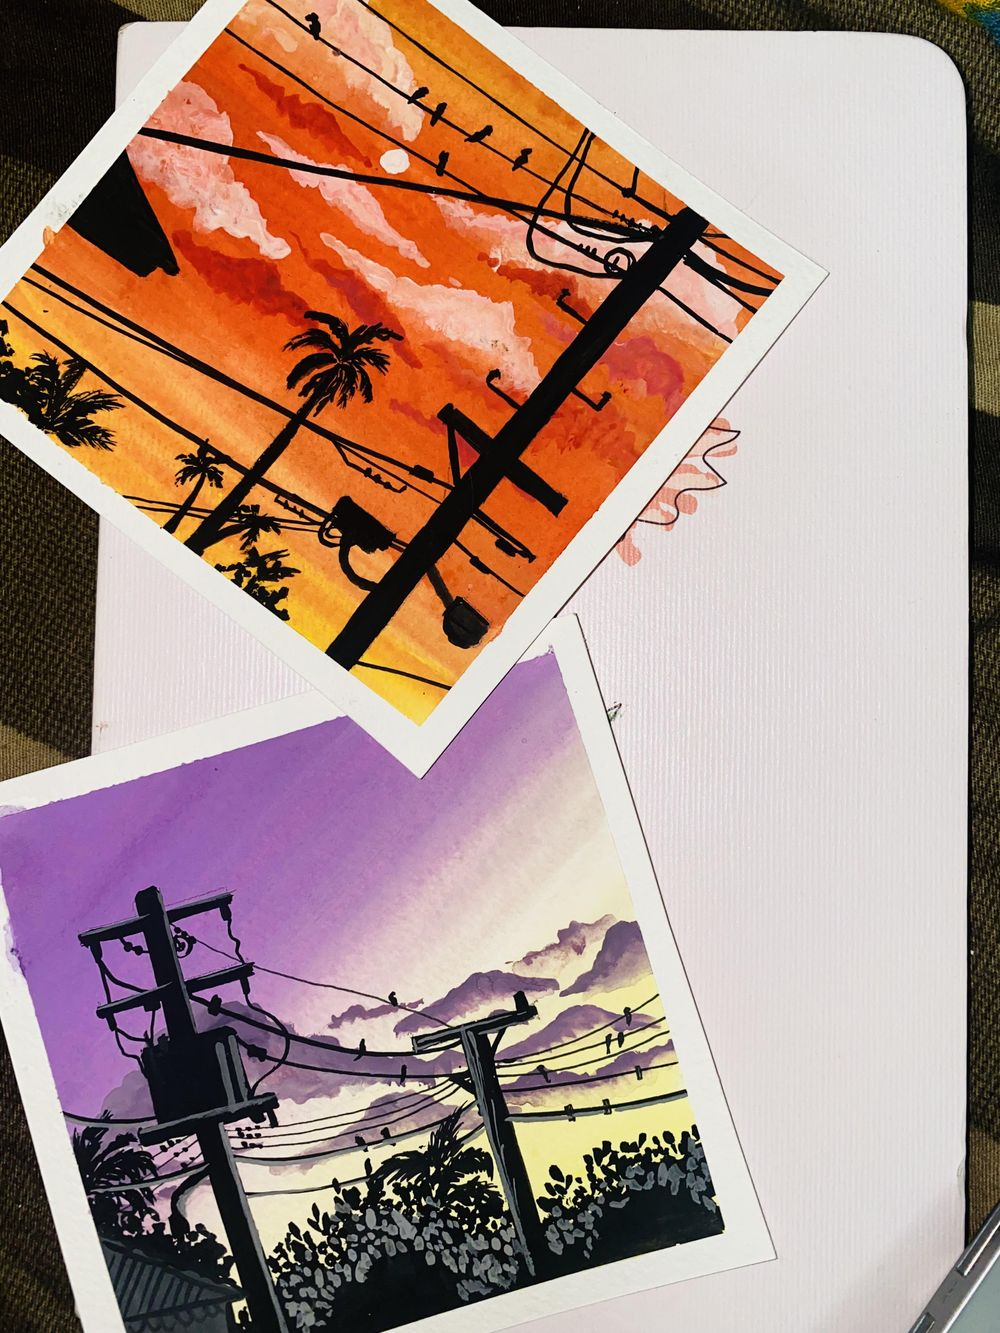 Gouache Silhouttes - image 7 - student project